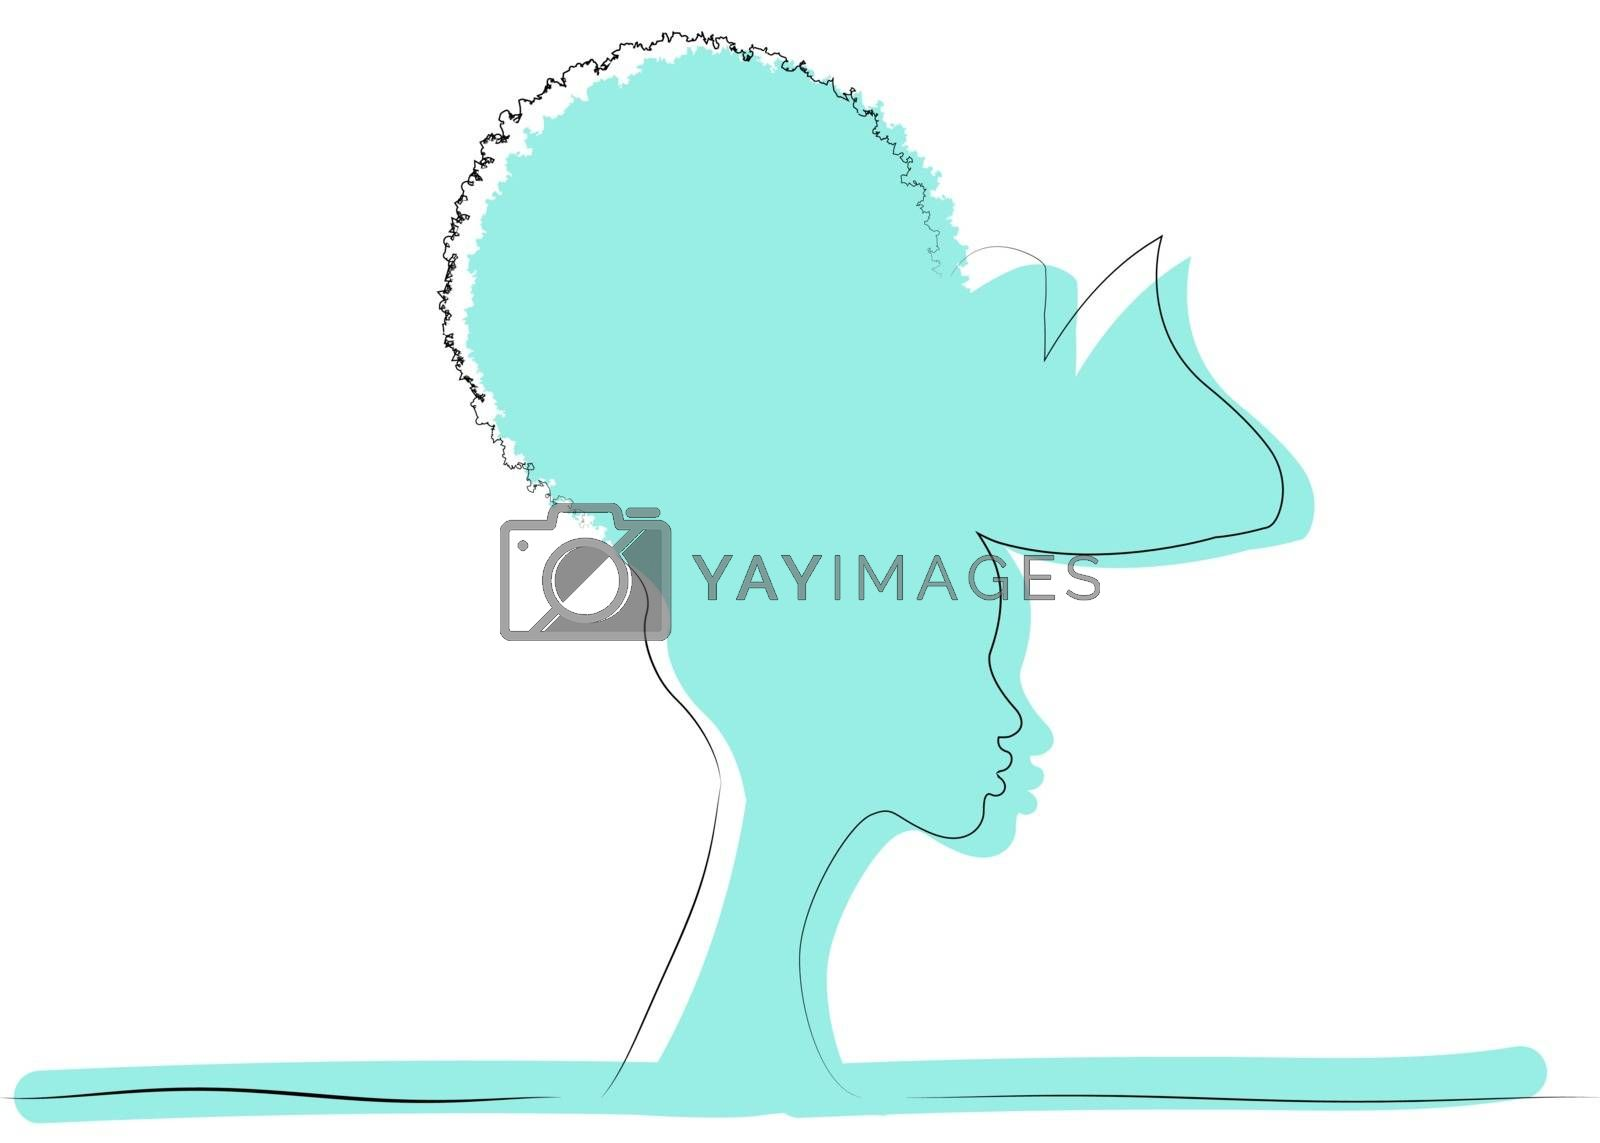 line art  drawing of African woman in turban and hair curly. Beauty woman silhouette logo icon. Modern artwork in minimal linear style, vector isolated on white background